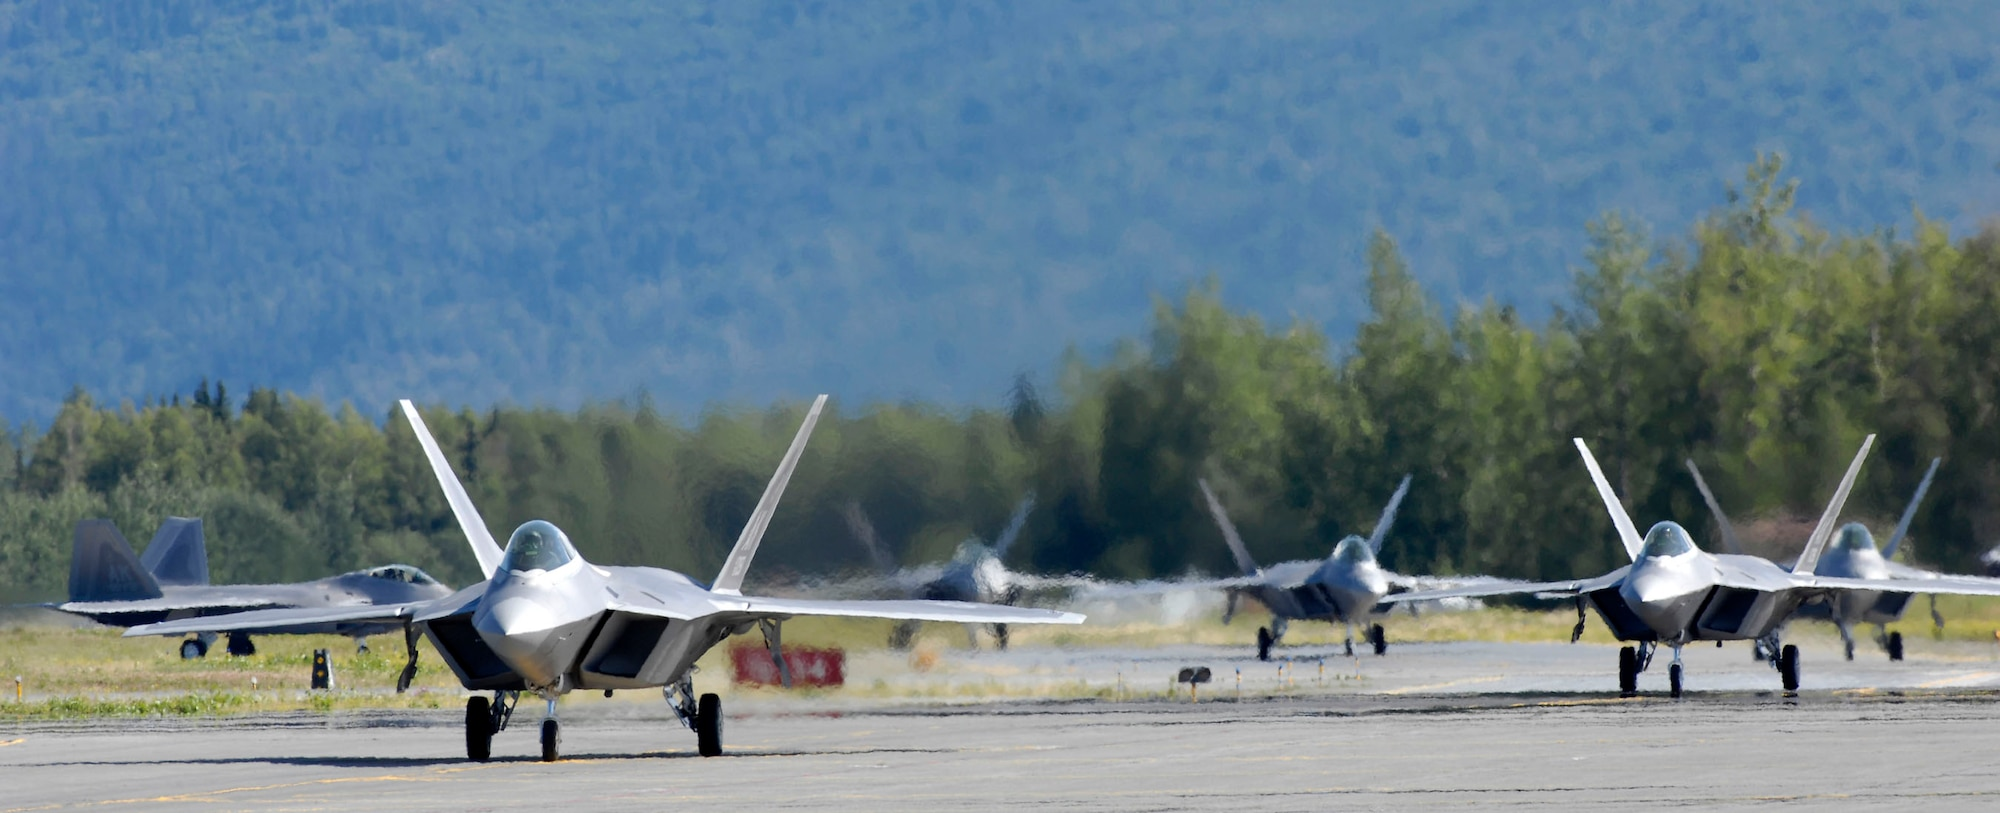 Six F-22 Raptors taxi following touchdown at Elmendorf Air Force Base, Alaska, during a ceremony marking the aircraft's arrival Aug. 8. The F-22s will join the active duty 3rd Wing and Air Force Reserve Command's 477th Fighter Group here. The 477th FG becomes the first Air Force Reserve unit to operate and maintain the F-22. (U.S. Air Force photo/Tech. Sgt. Keith Brown)